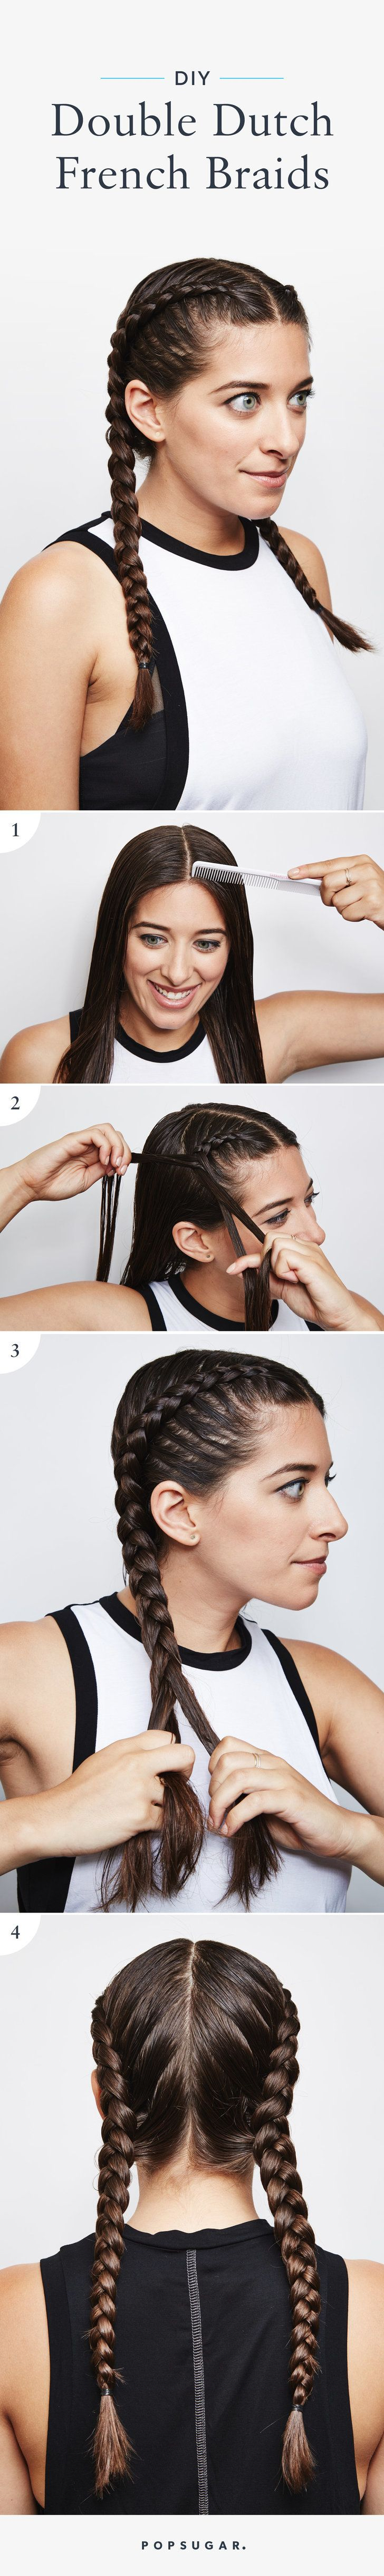 Best 25+ Sport Hairstyles Ideas On Pinterest  Softball Hair Braids, Soccer  Hairstyles And Basketball Hairstyles